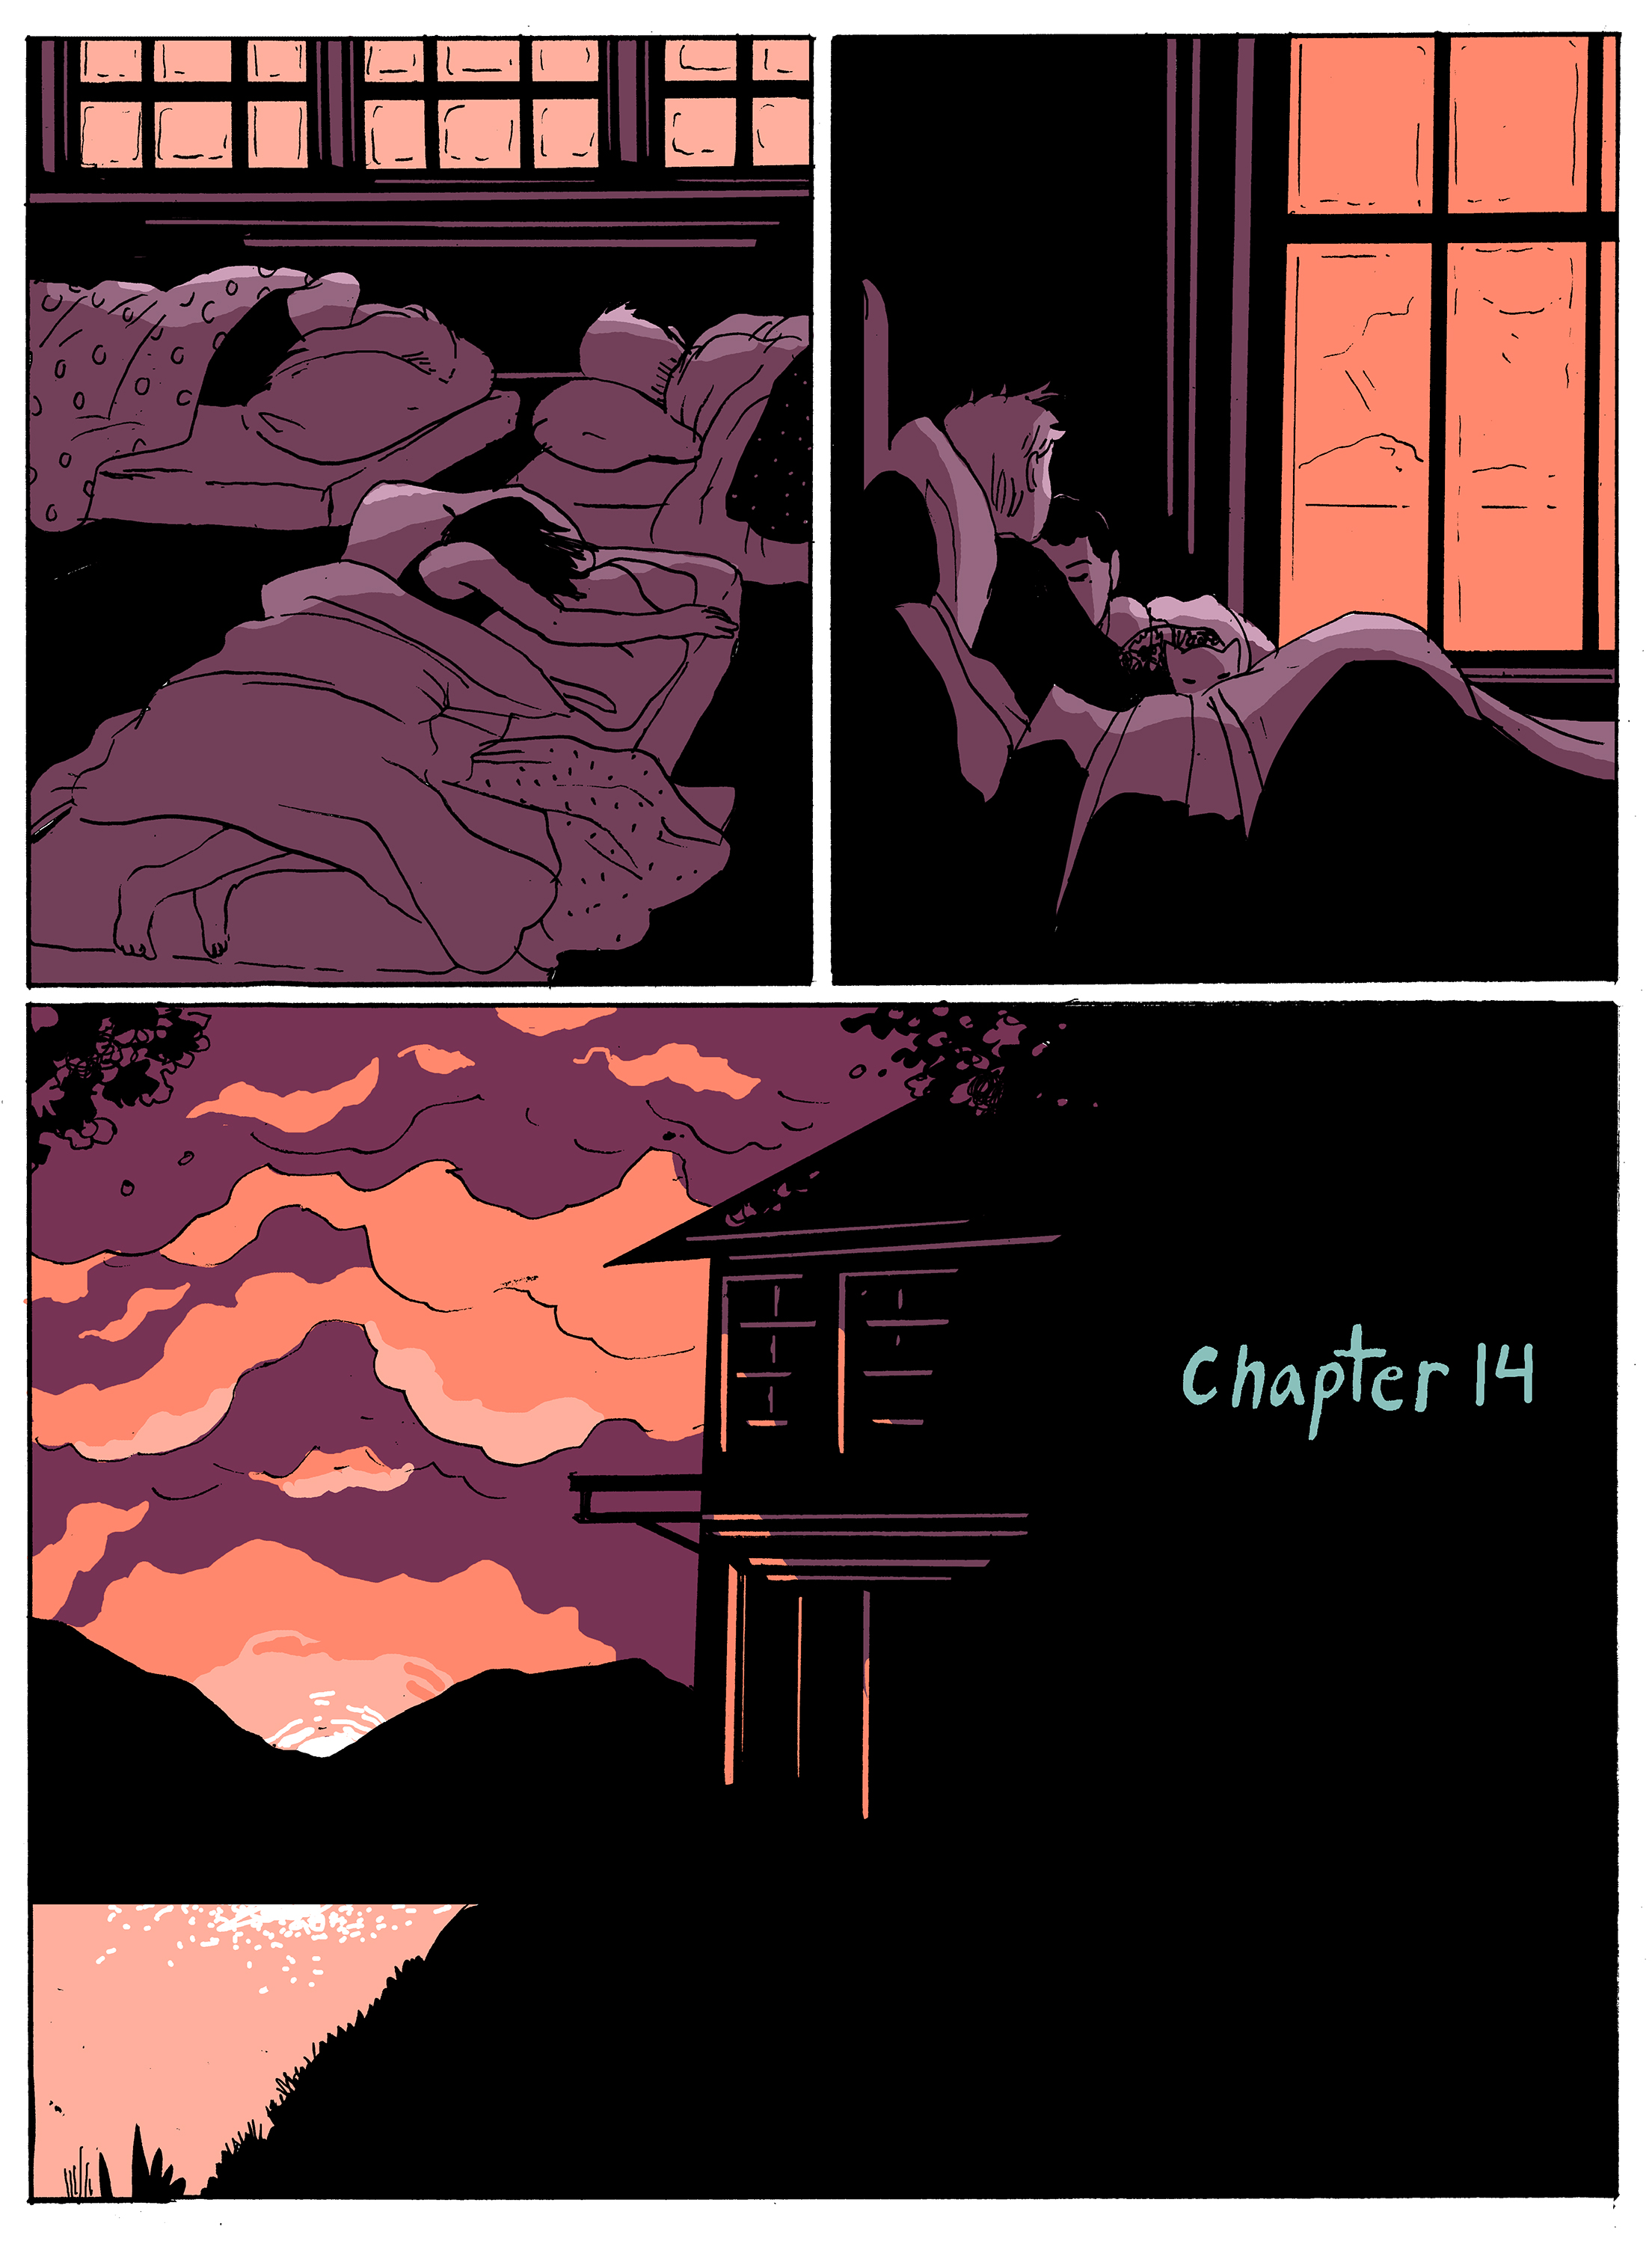 chapter14_page01.jpg